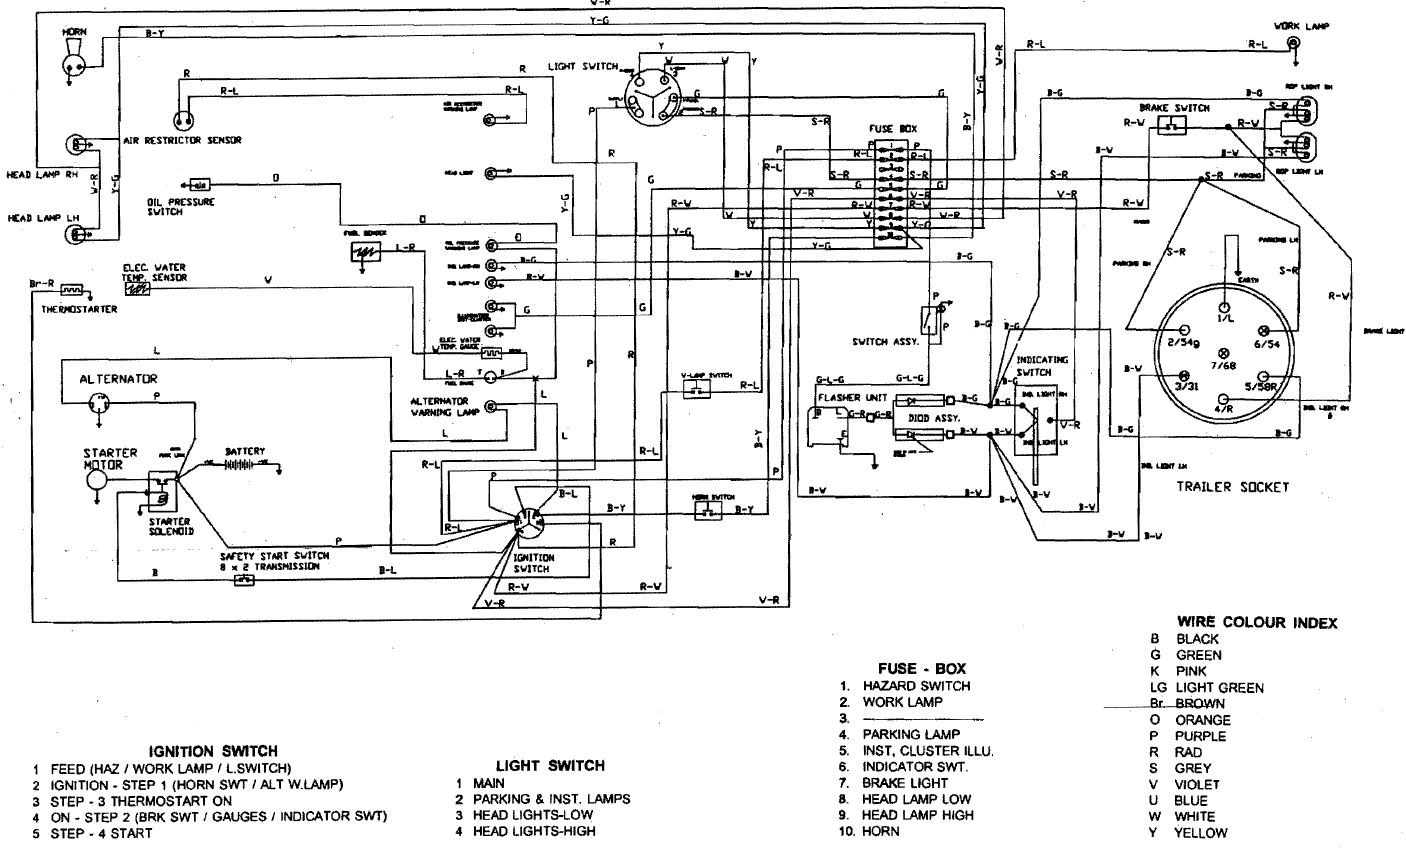 farm tractor wiring diagrams online wiring diagram Farm Tractor Tools tractor wiring diagrams wiring diagram database farm tractor wiring diagrams